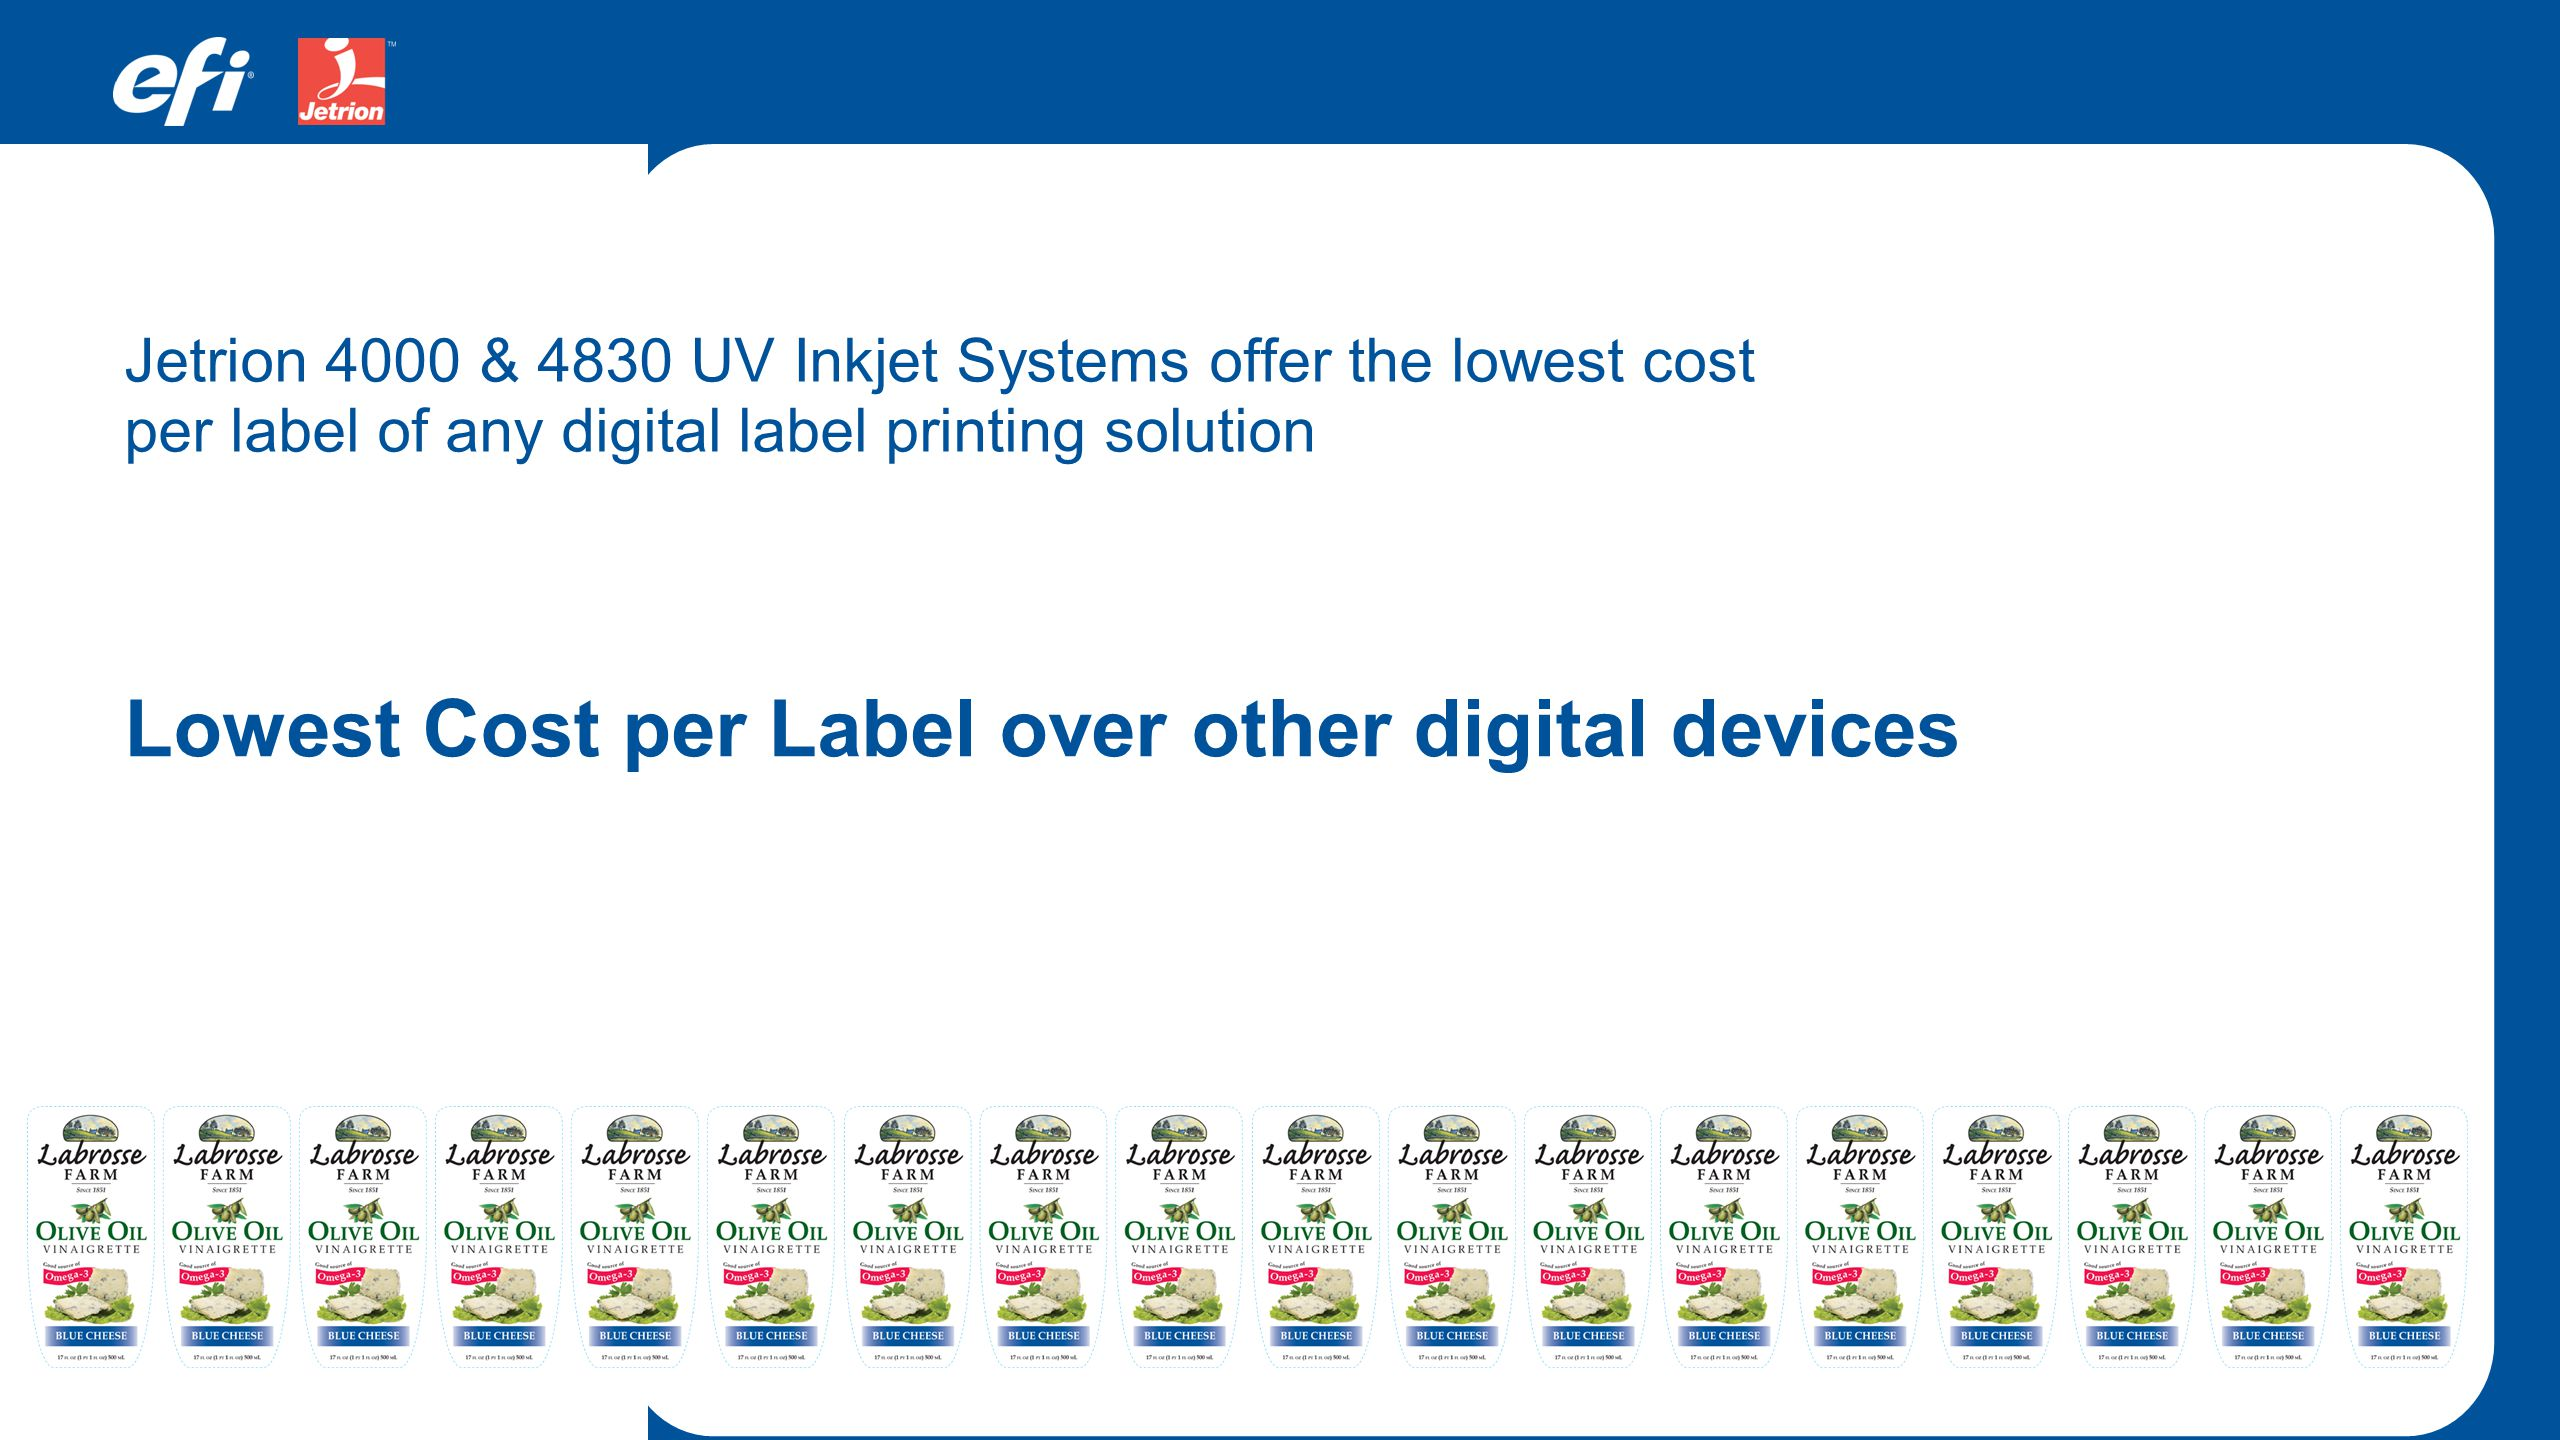 Lowest Cost per Label over other digital devices